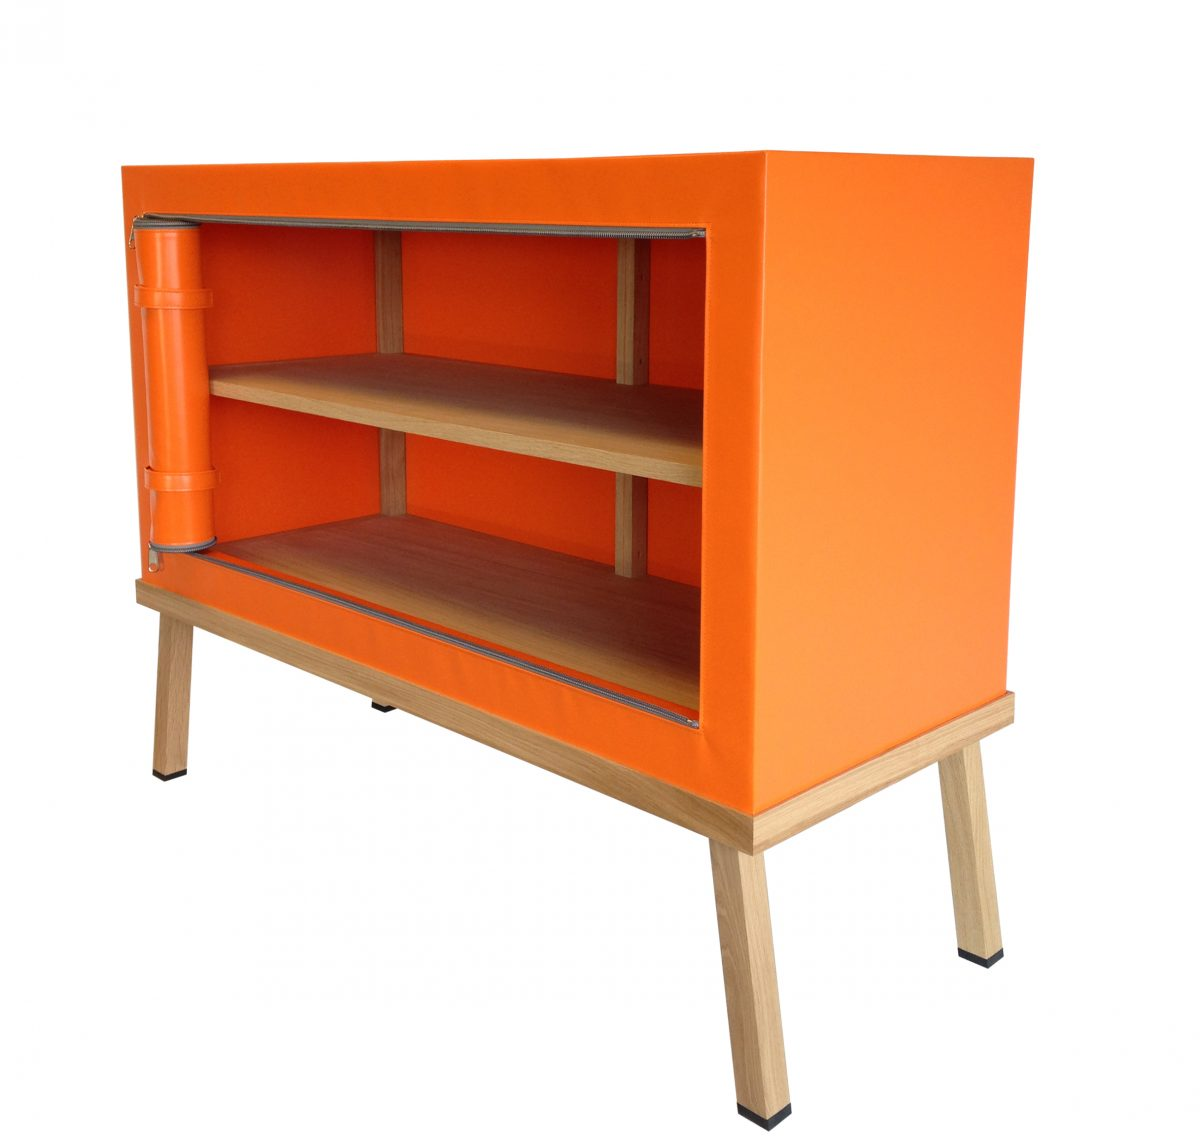 Credenza Orange Truecolors Visser Meijwaard Dutch Design Webshop